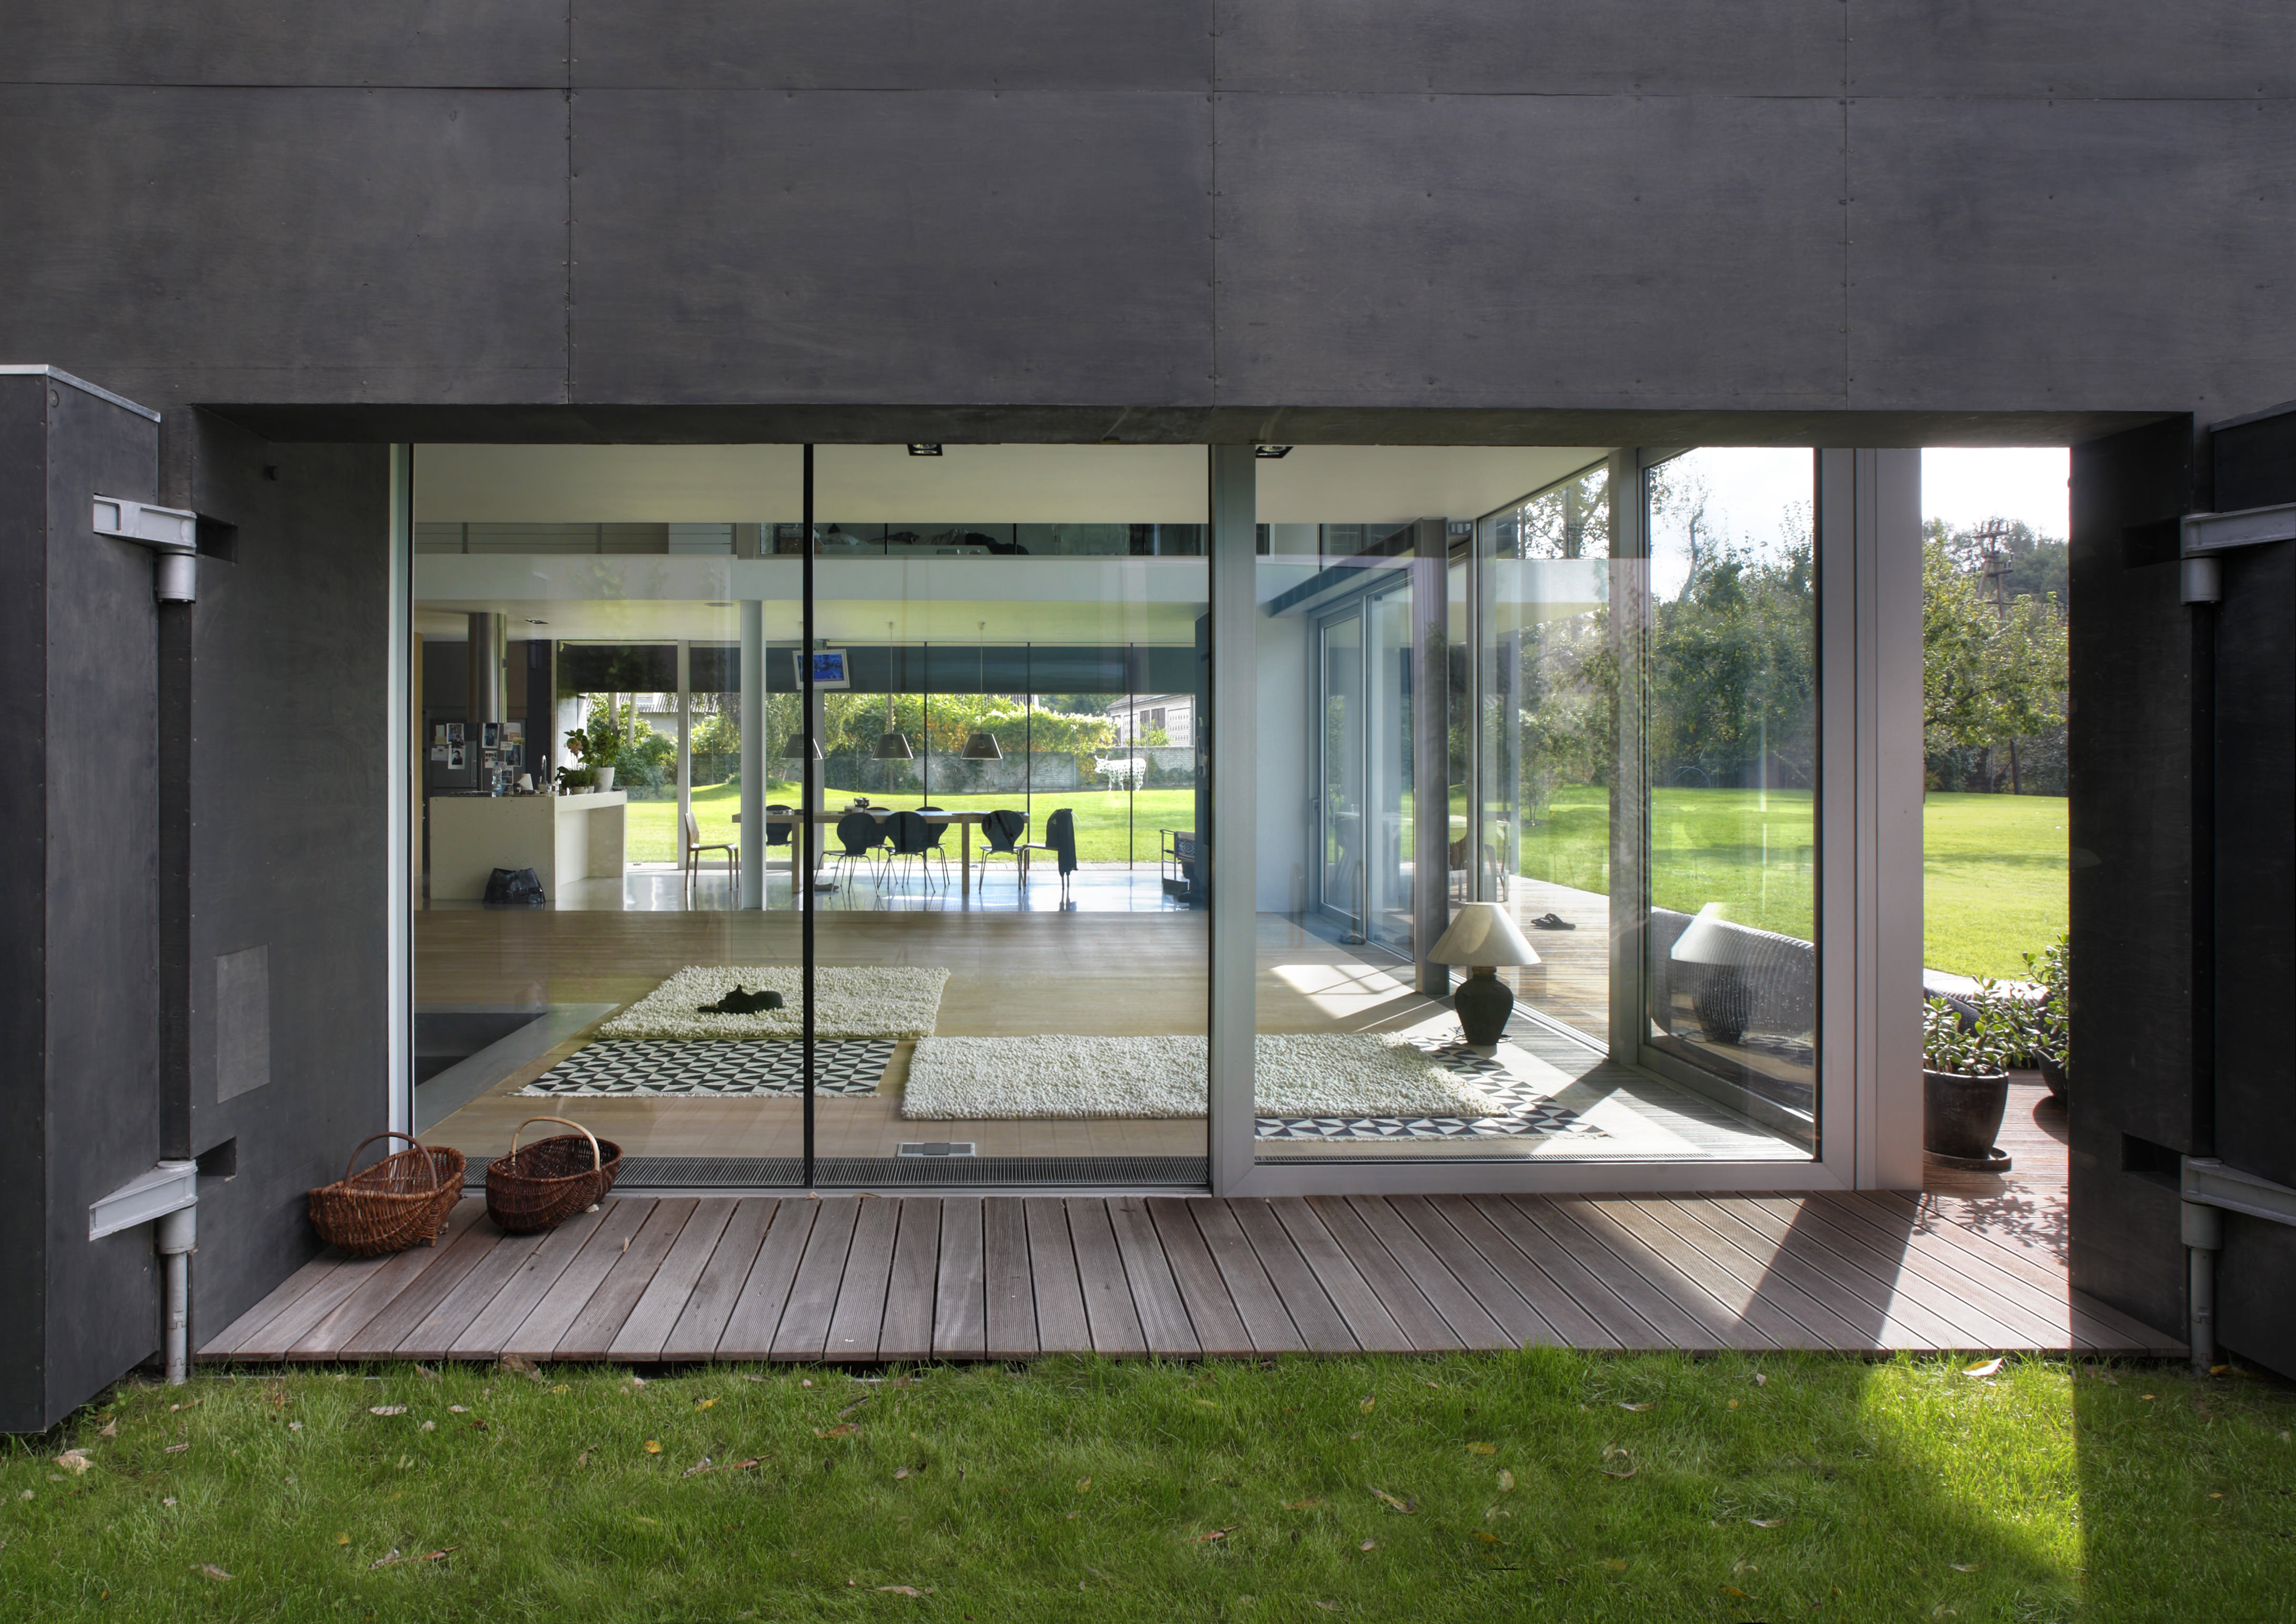 Zombie proof safe house by kwk promes for Casa jardin antiavispas